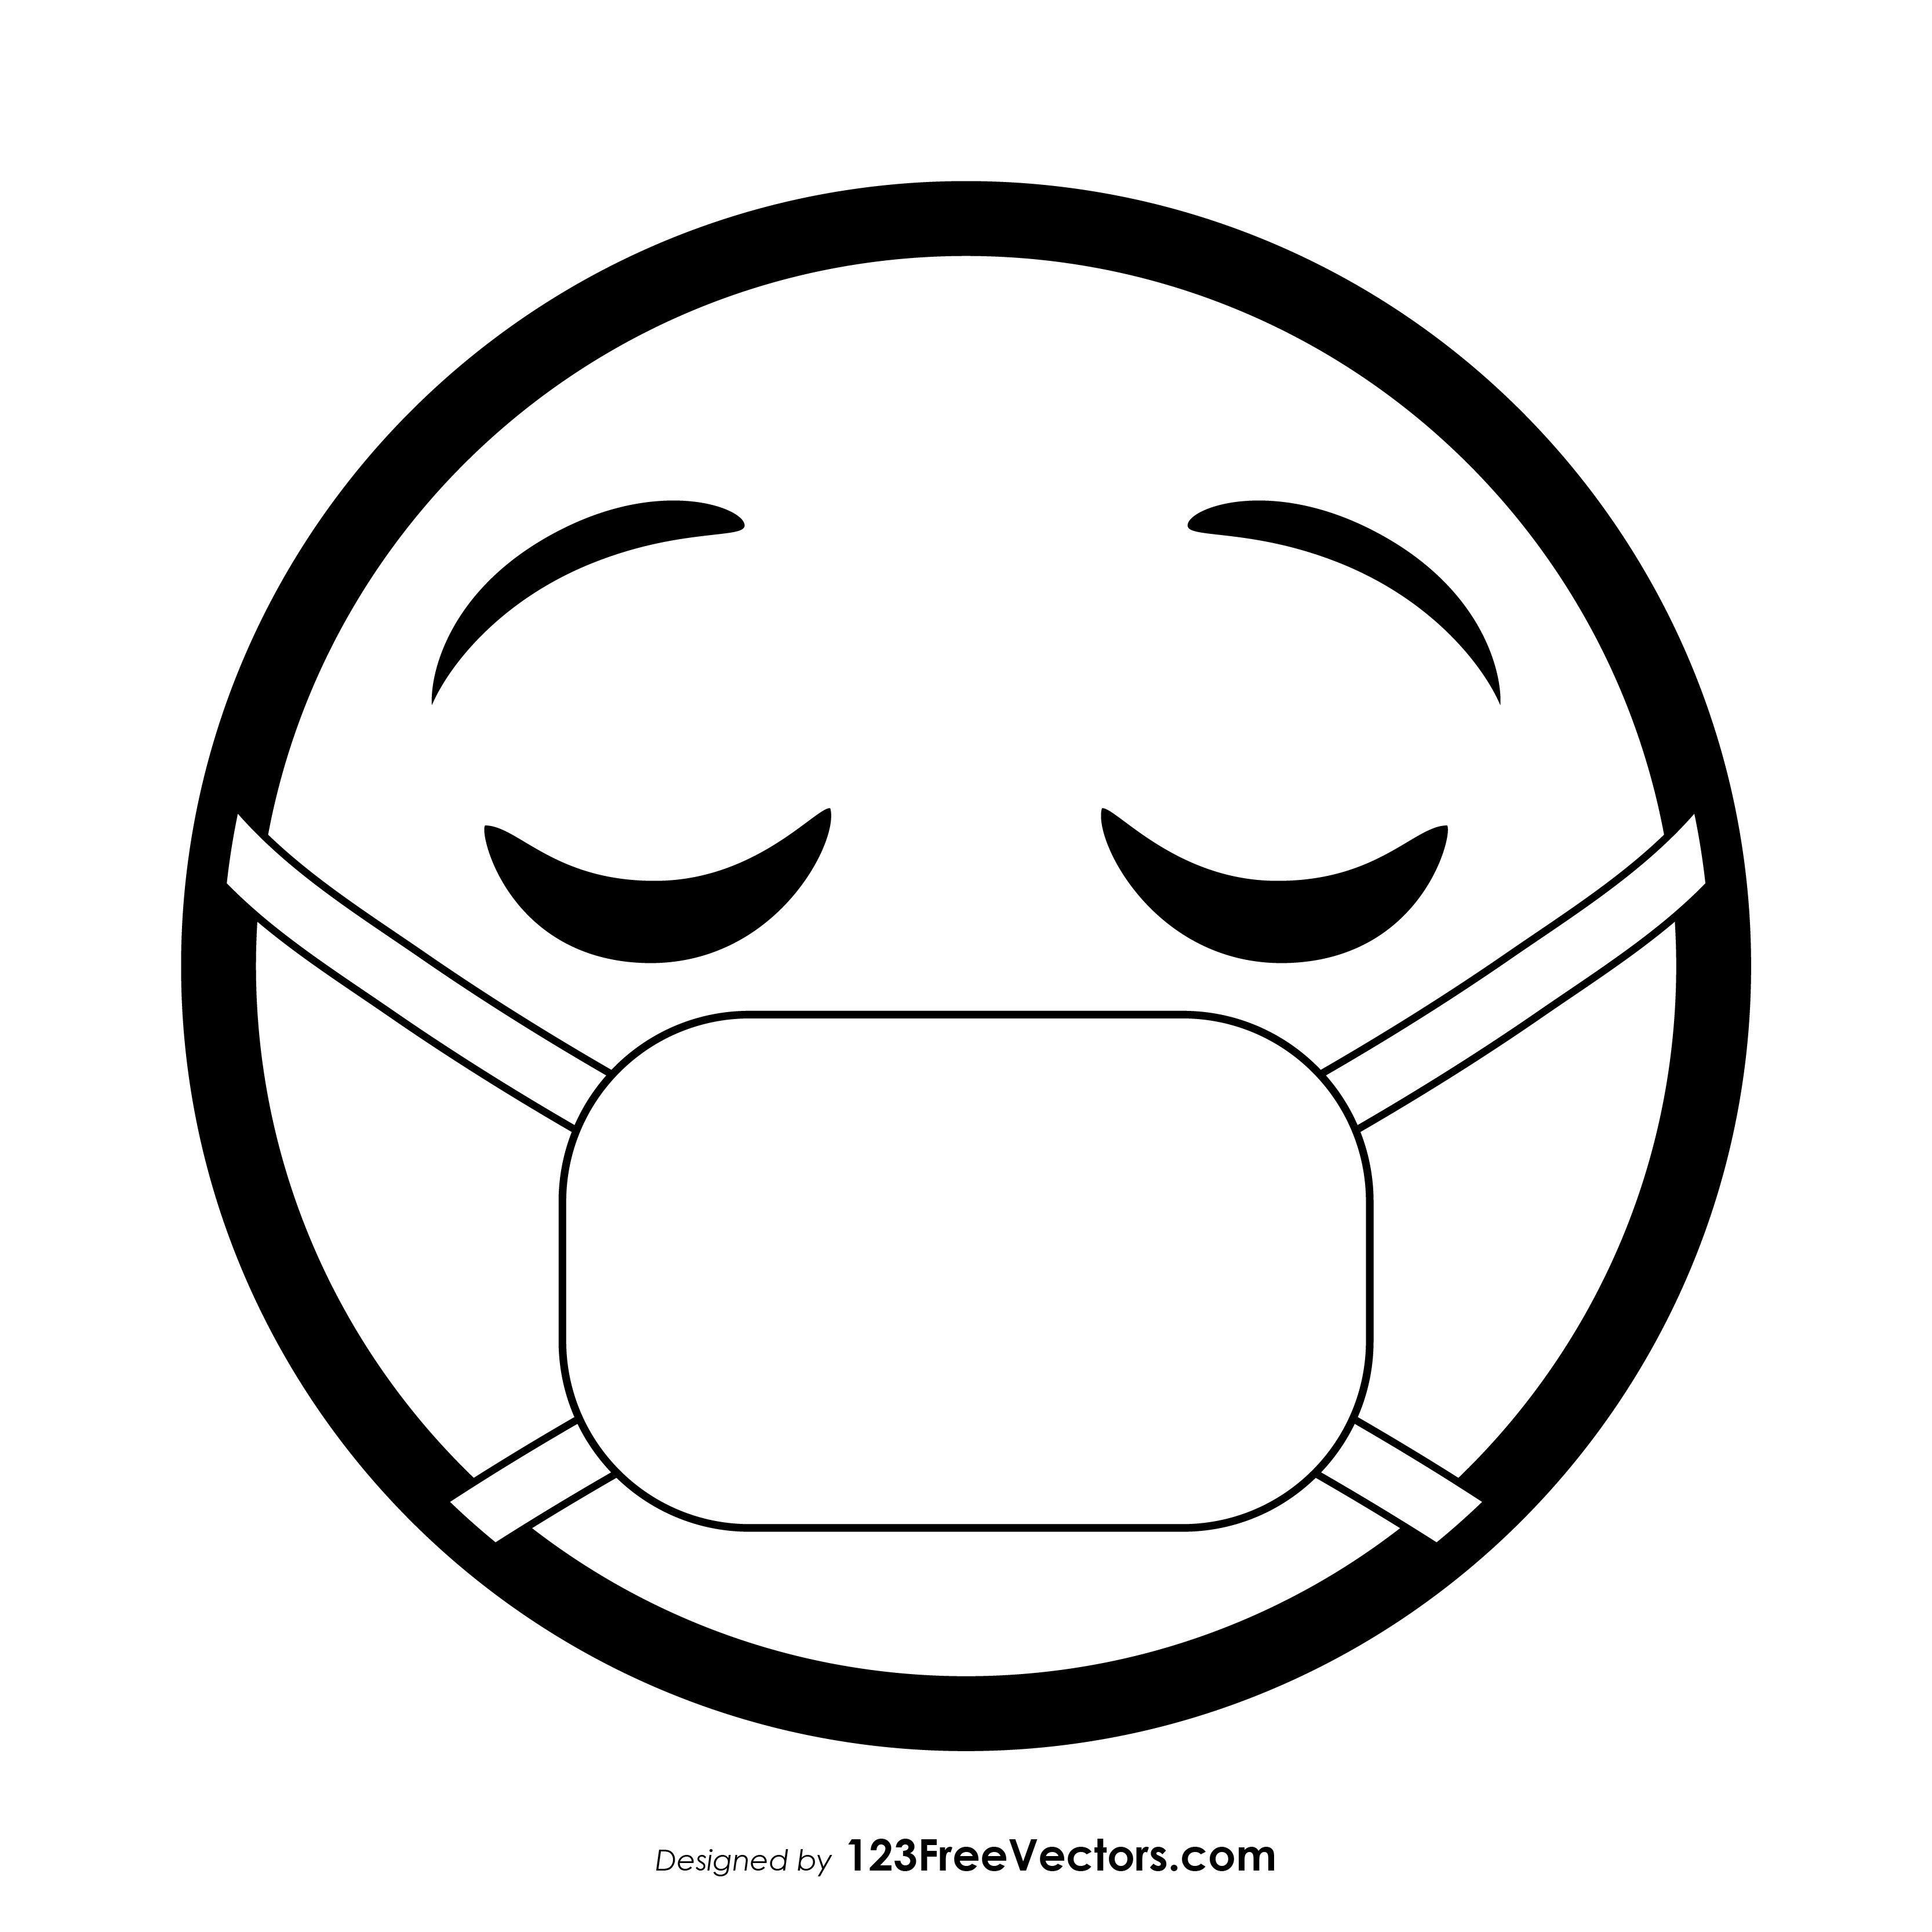 Face With Medical Mask Emoji Outline Emoji Coloring Pages Cute Easy Drawings Mini Drawings